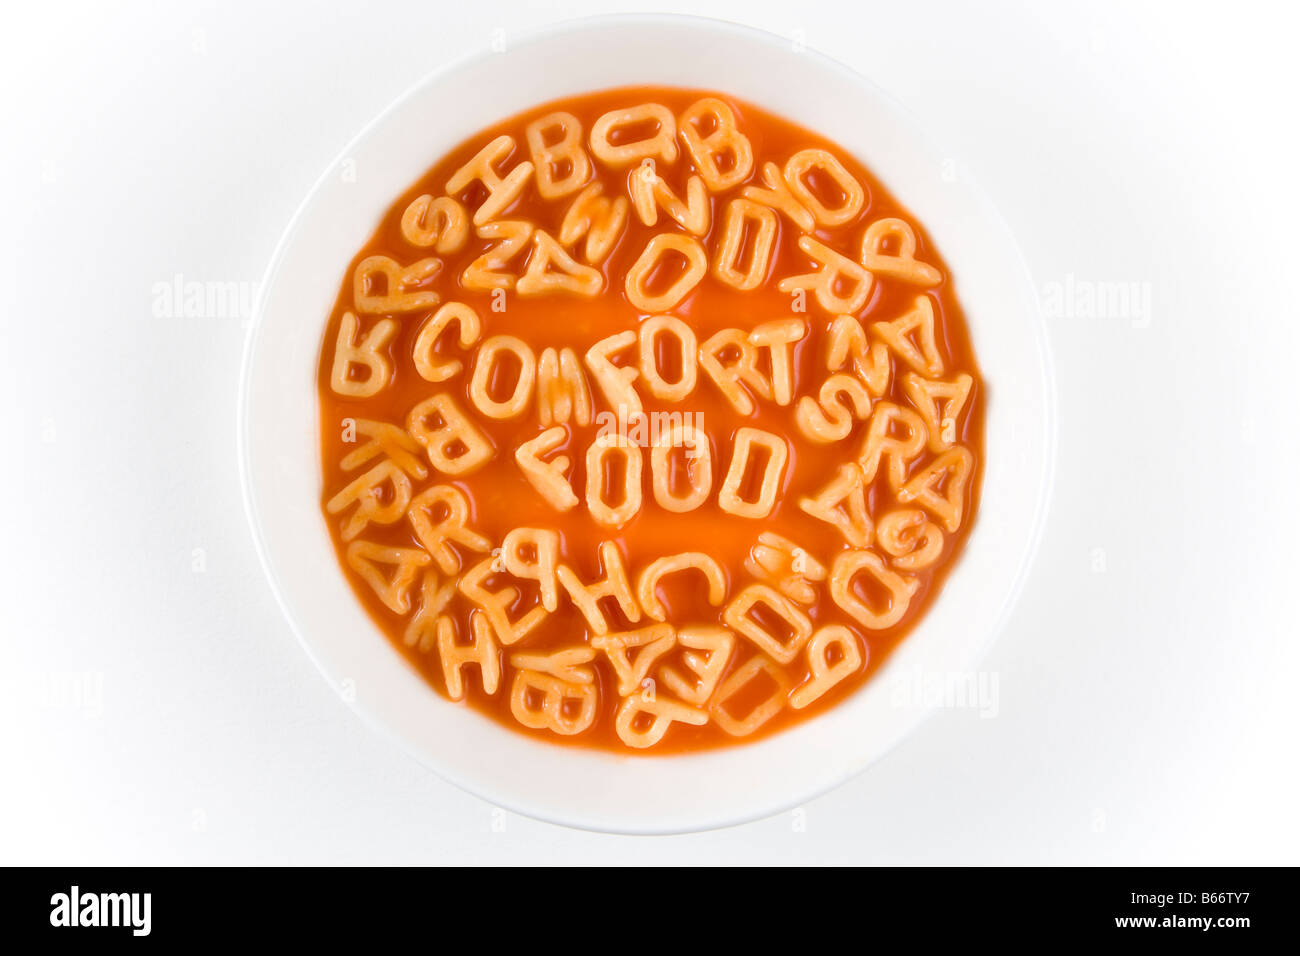 Spaghetti letters spelling out the words fort food in a white